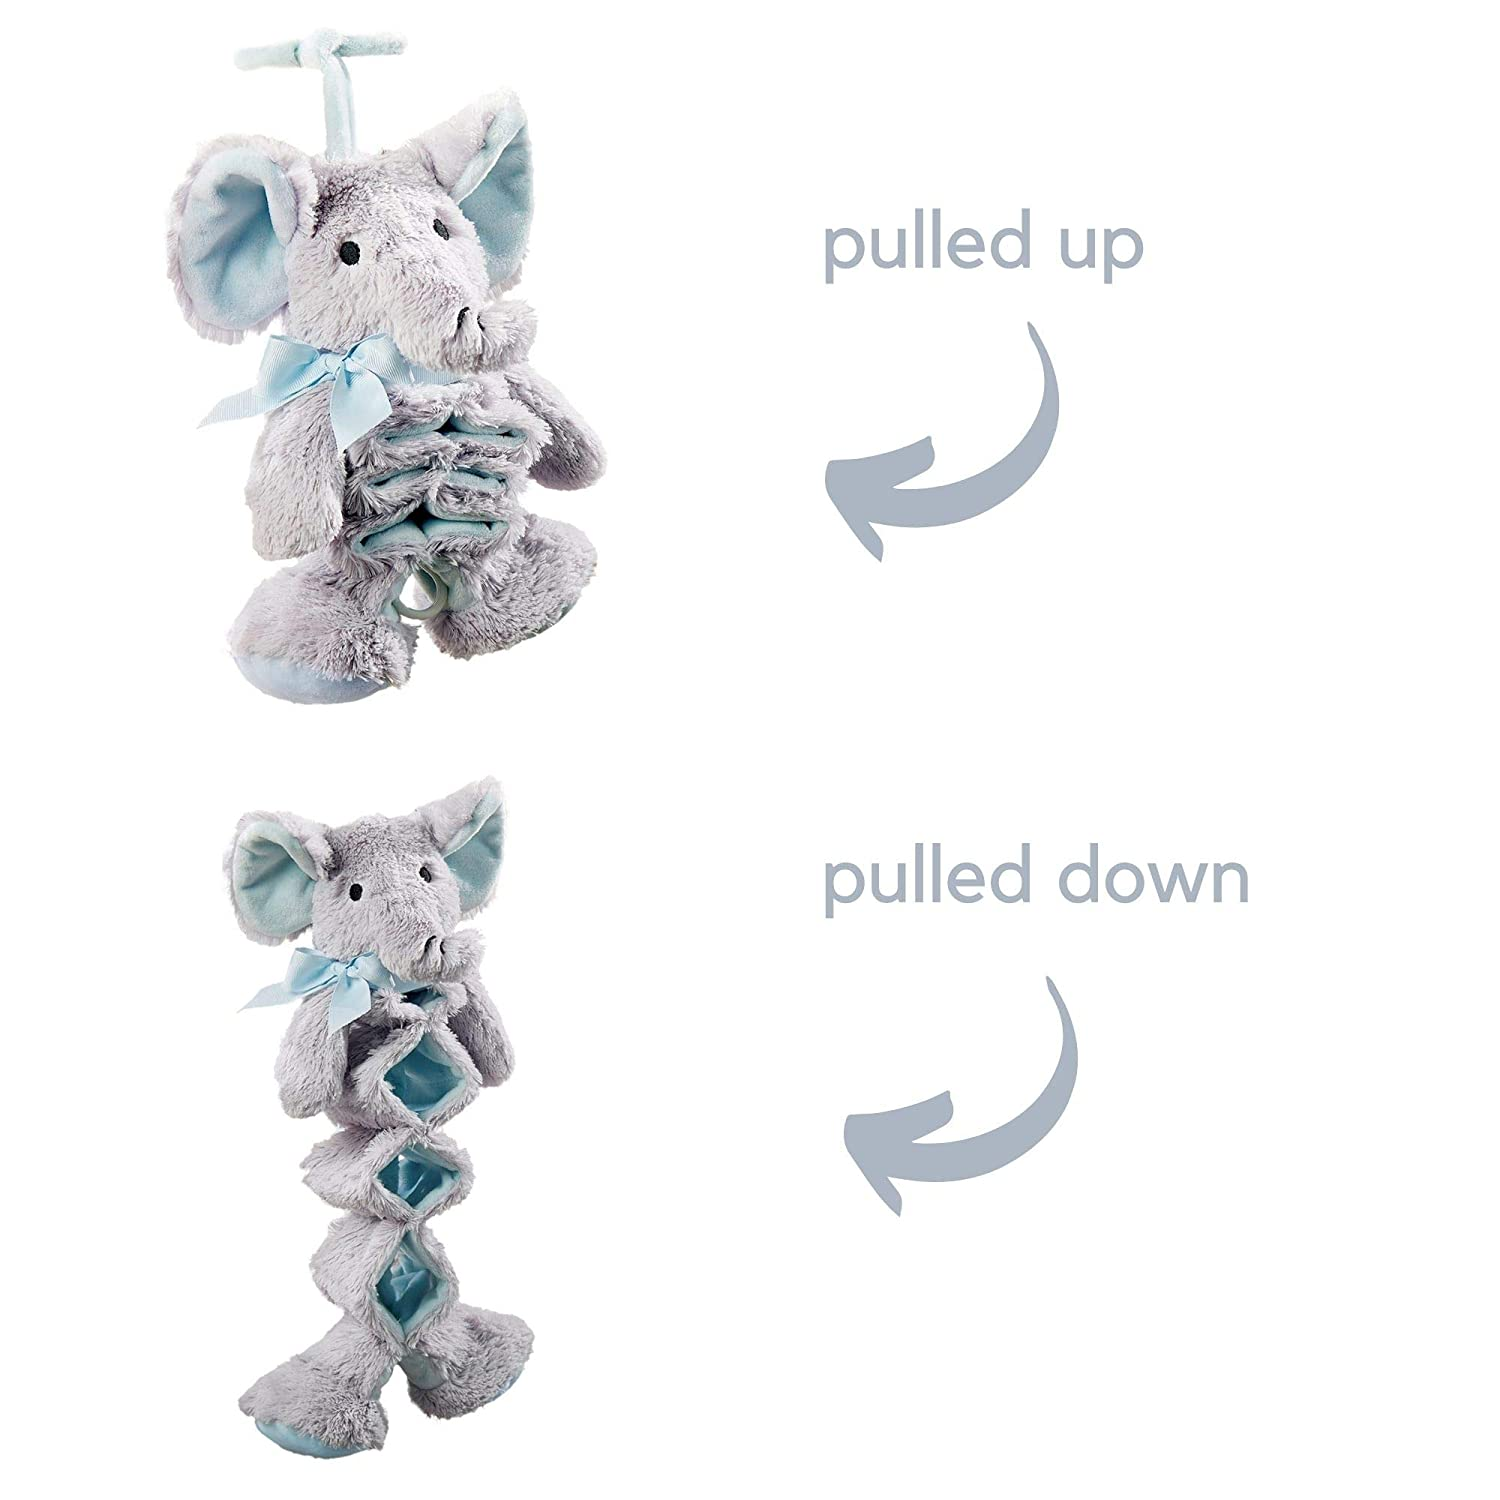 Lil Llama Baby Musical Pull Toy - Infant Baby Elephant Musical Toys - Entertain Baby with Baby Musical Toys - Pull Down Musical Toy - Plush Crib Musical Toy - Soft Pull String Musical Toy